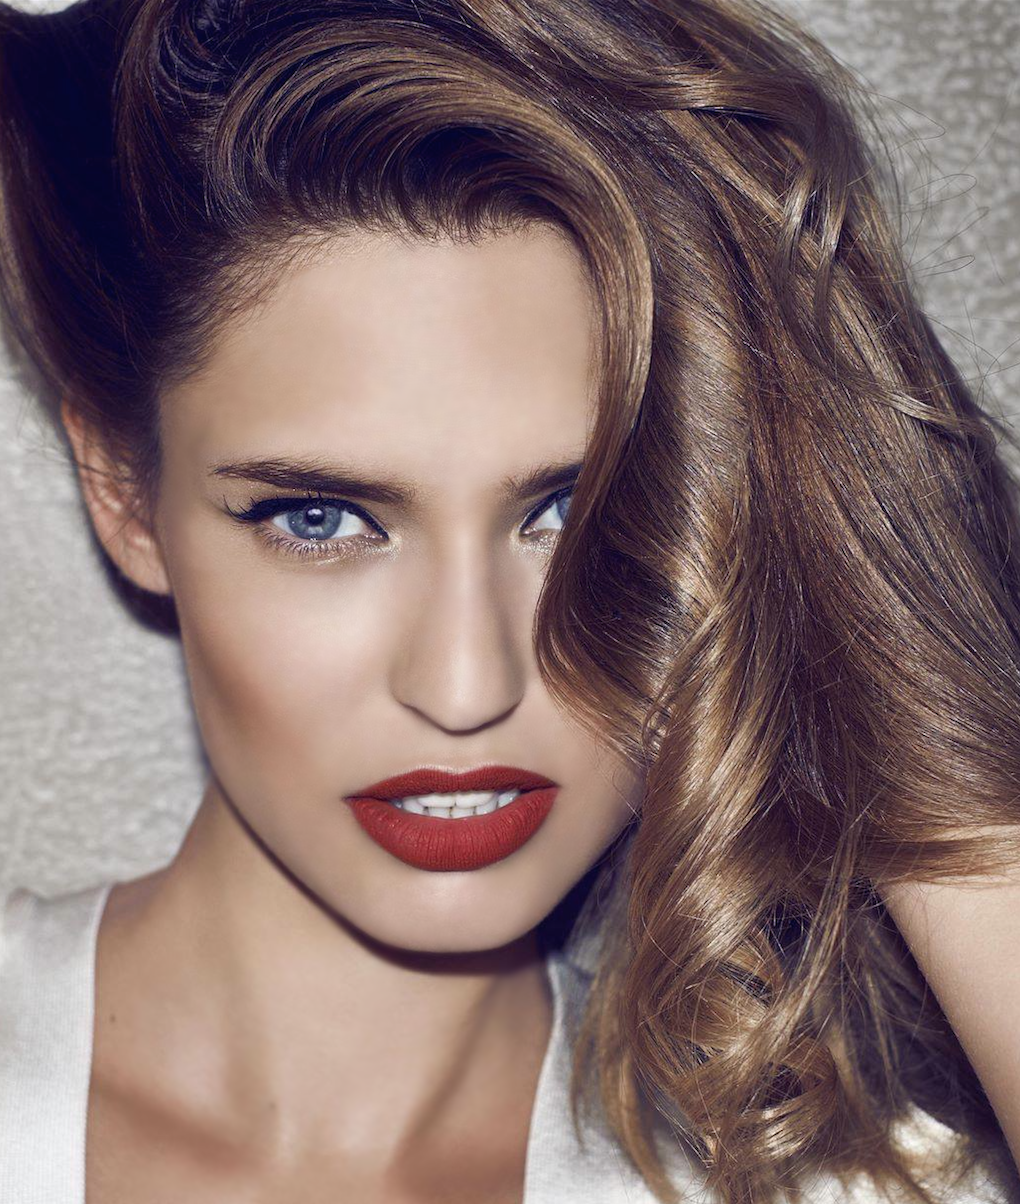 BIANCA BALTI for BASSAM FATTOUH Cosmetics